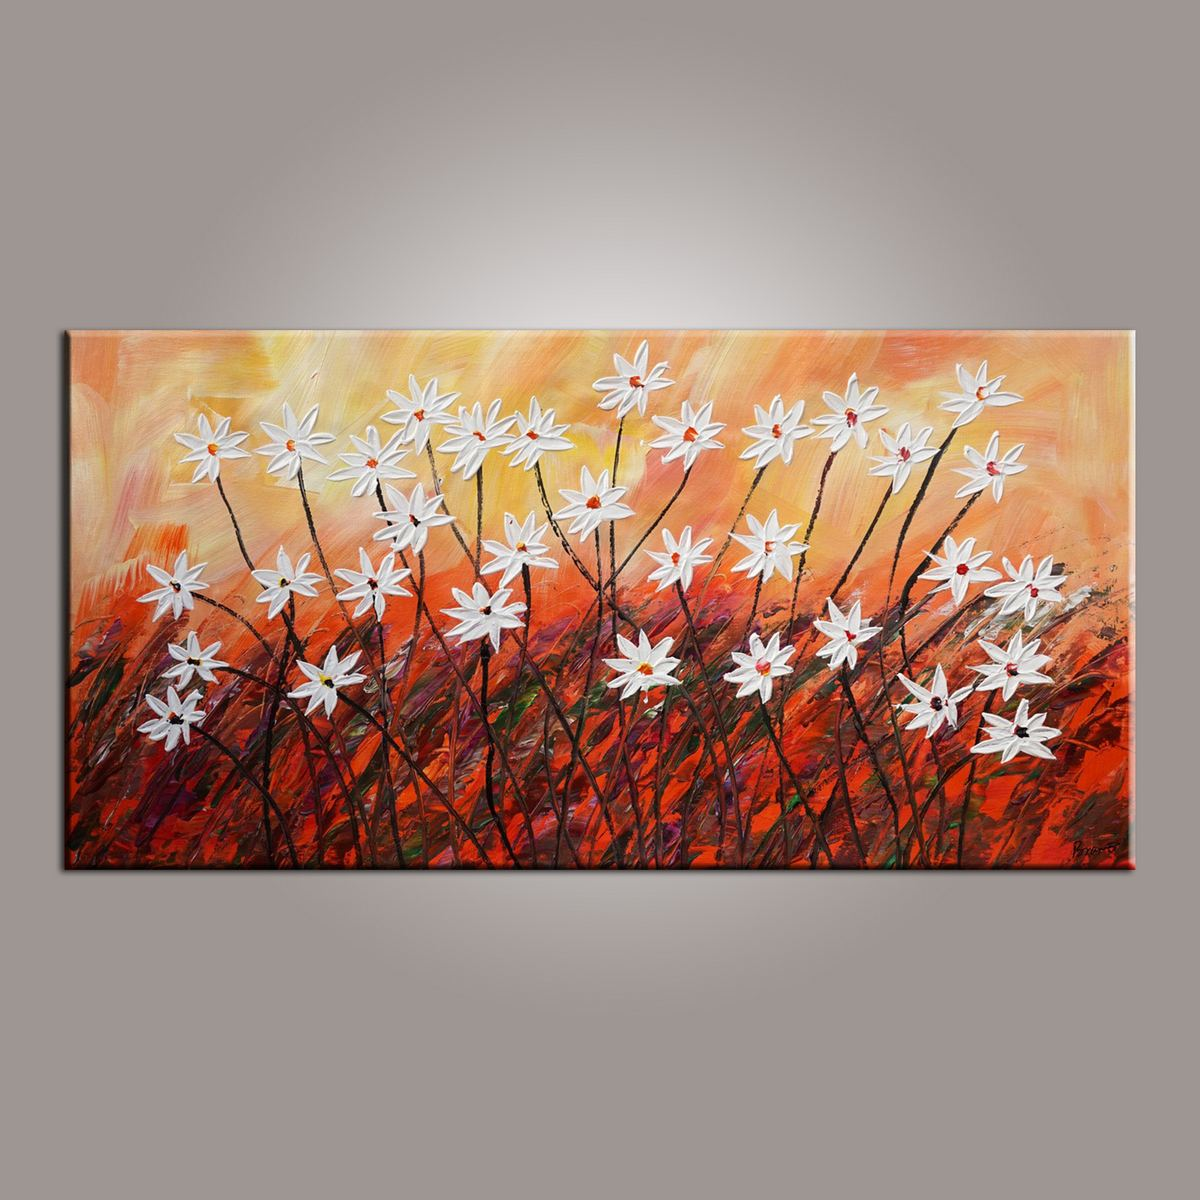 Flower Art, Abstract Art Painting, Acrylic Painting, Wall Painting, Canvas Wall Art, Bedroom Wall Art, Canvas Art, Modern Art, Contemporary Art-Paintingforhome